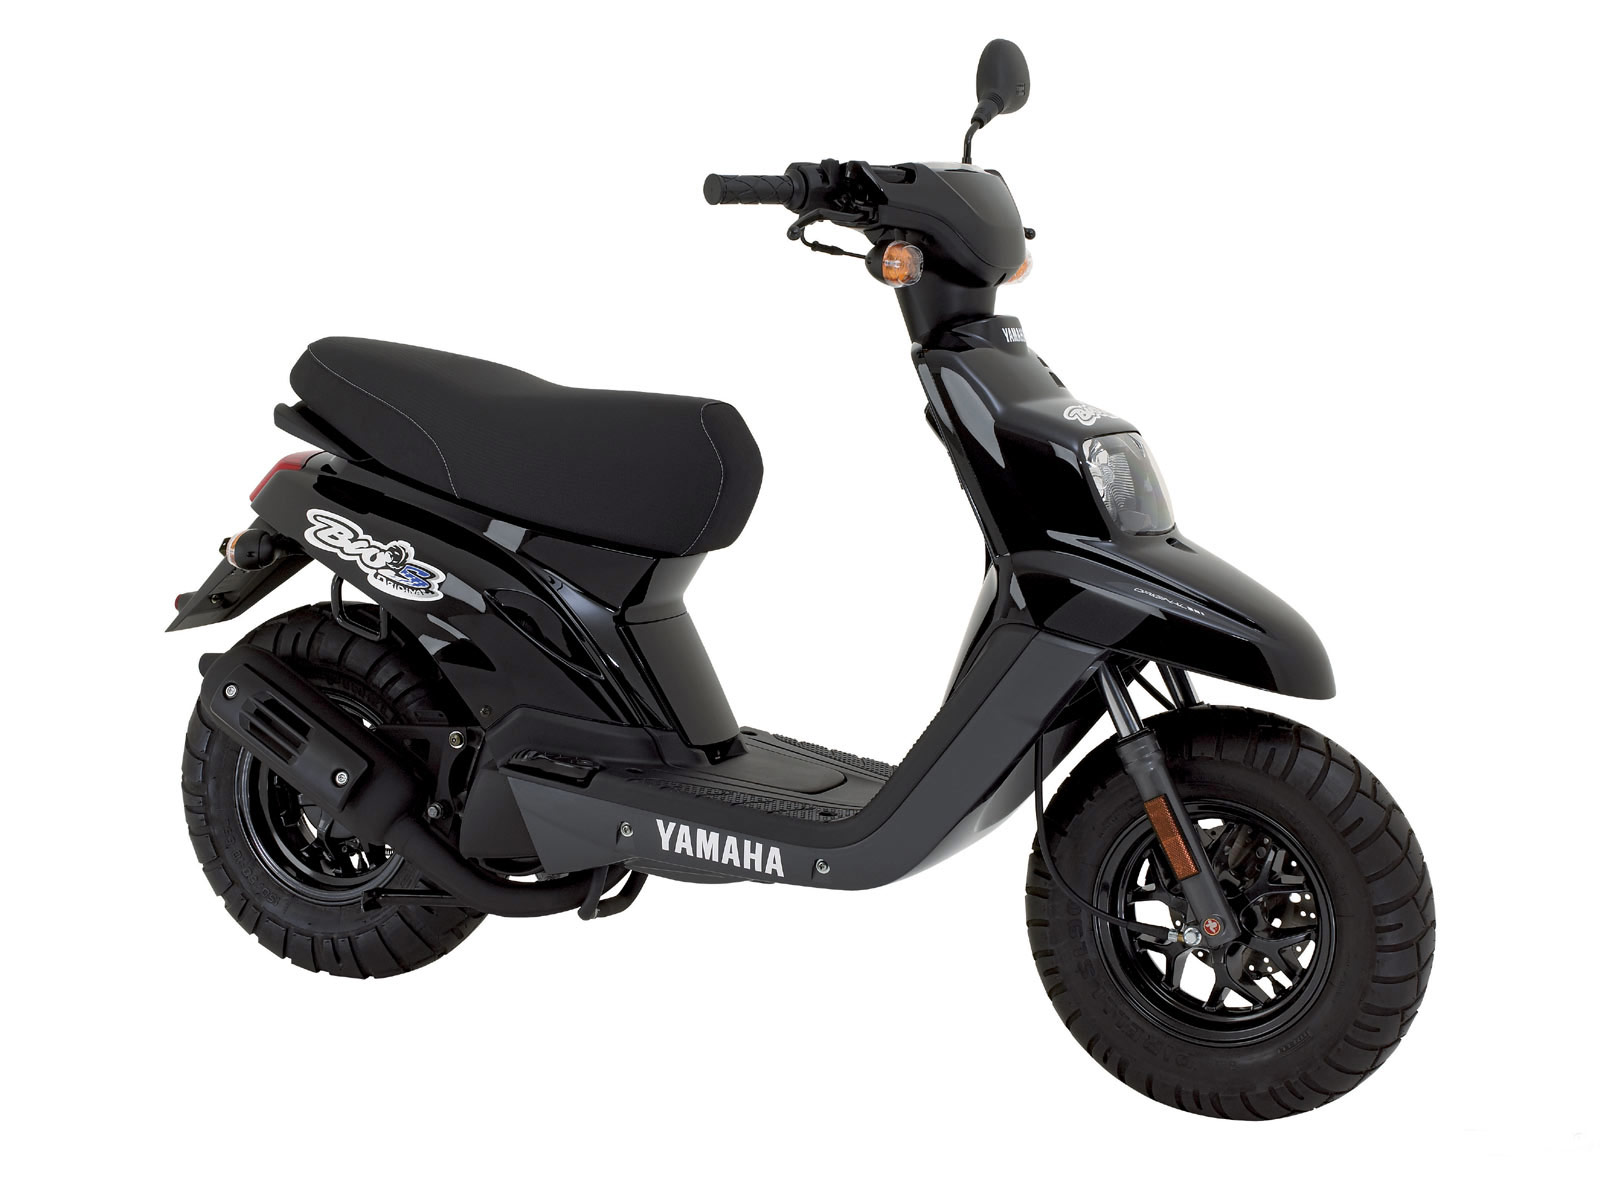 2007 YAMAHA Aerox R Scooter pictures, specifications